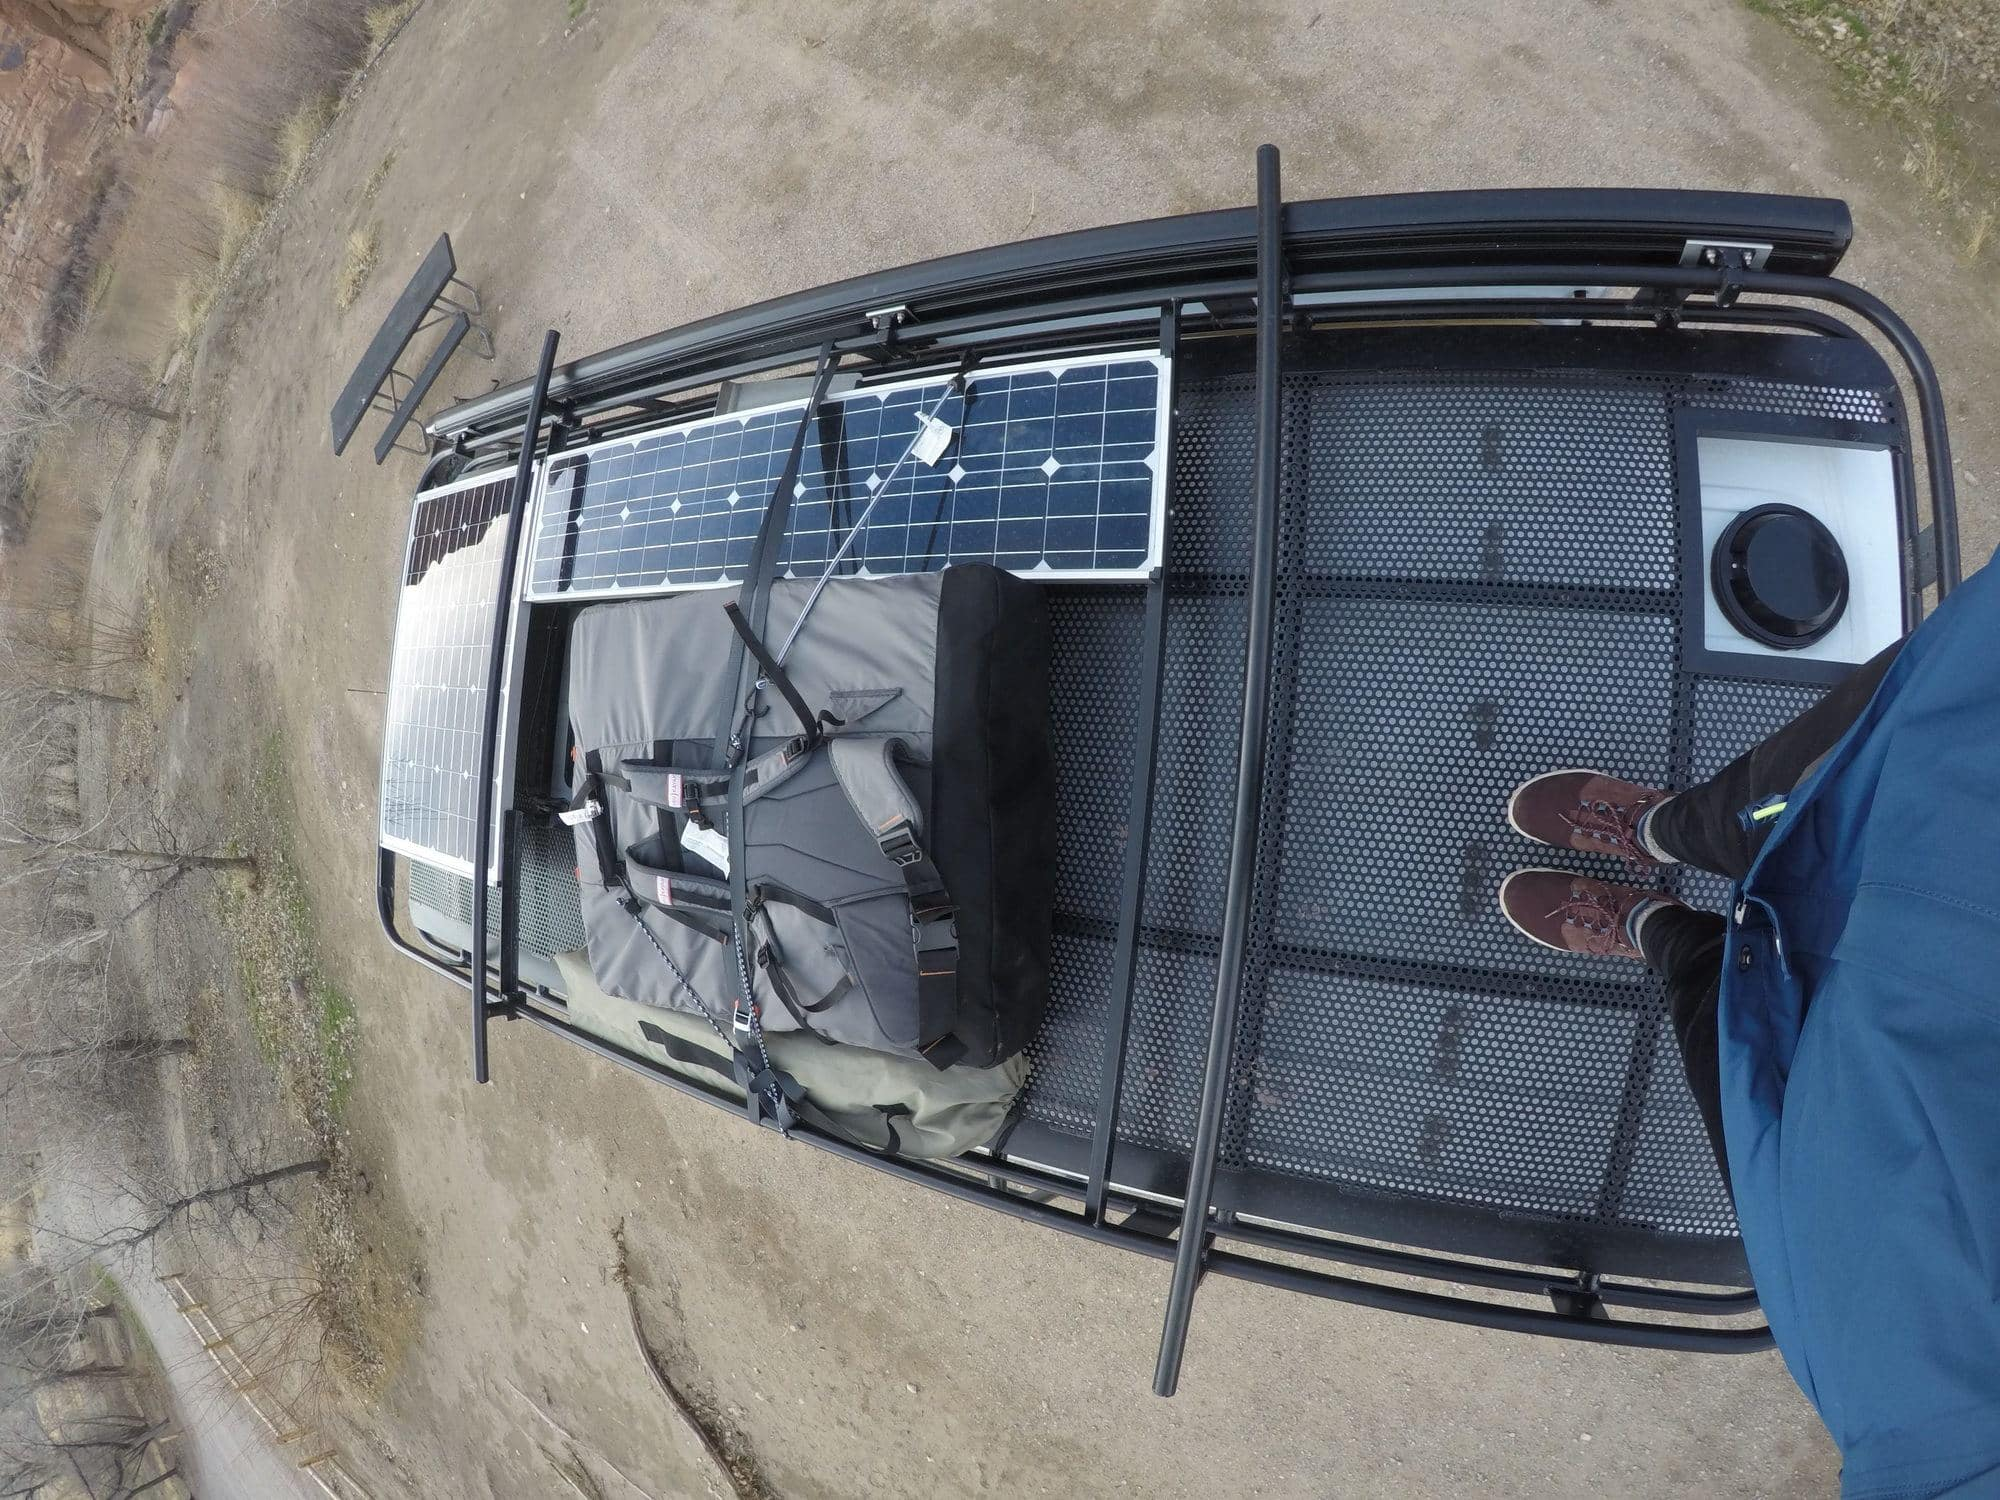 A detailed Aluminess review with pros/cons & a video tour of my Aluminess Sprinter Van roof rack, ladder, and rear bumper storage system.